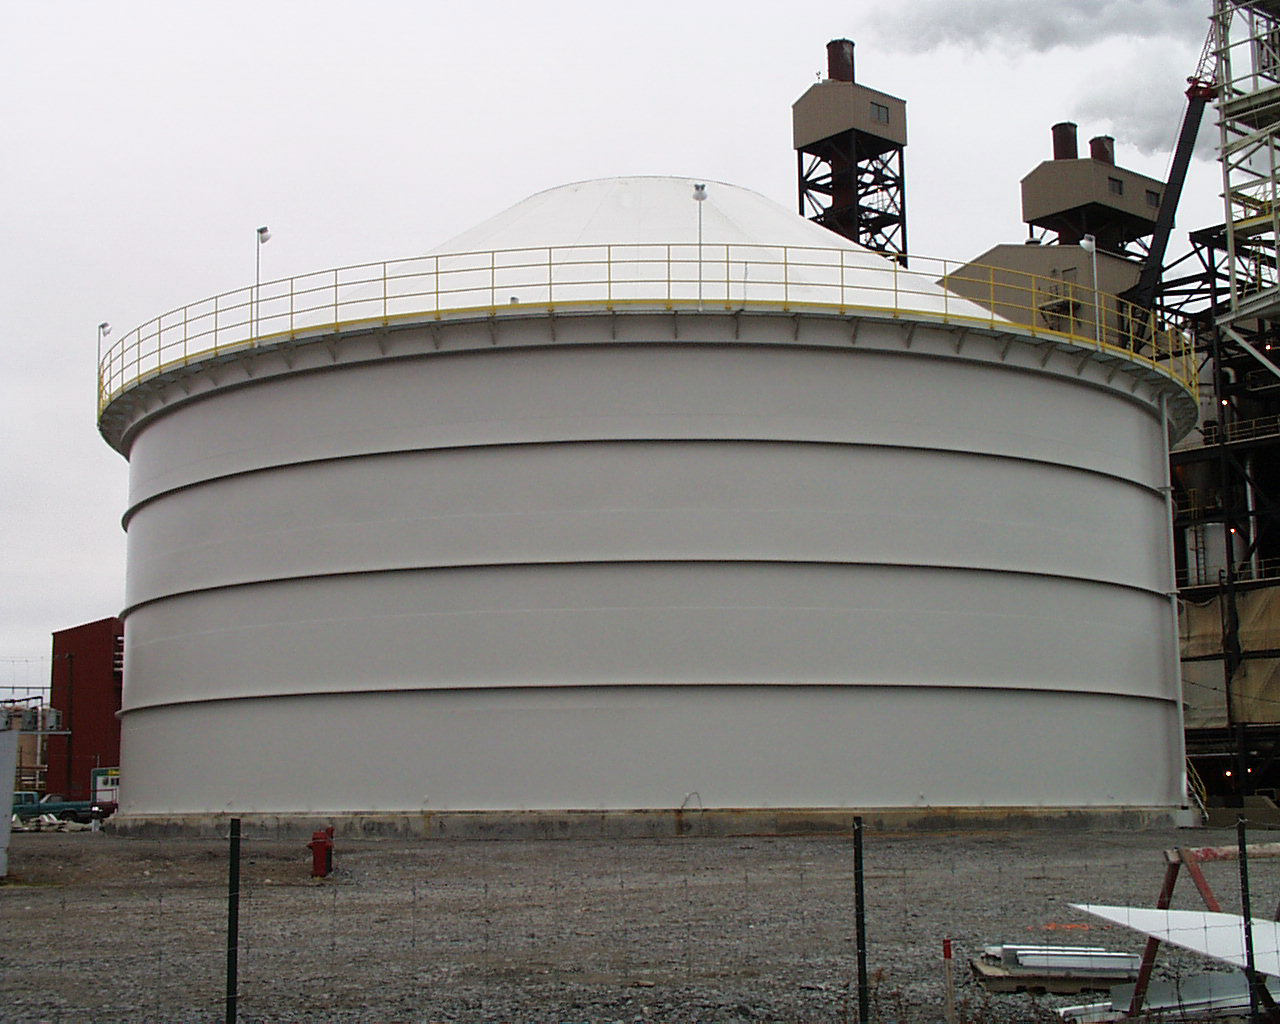 112' x 40' High, Coated Alumina Silo